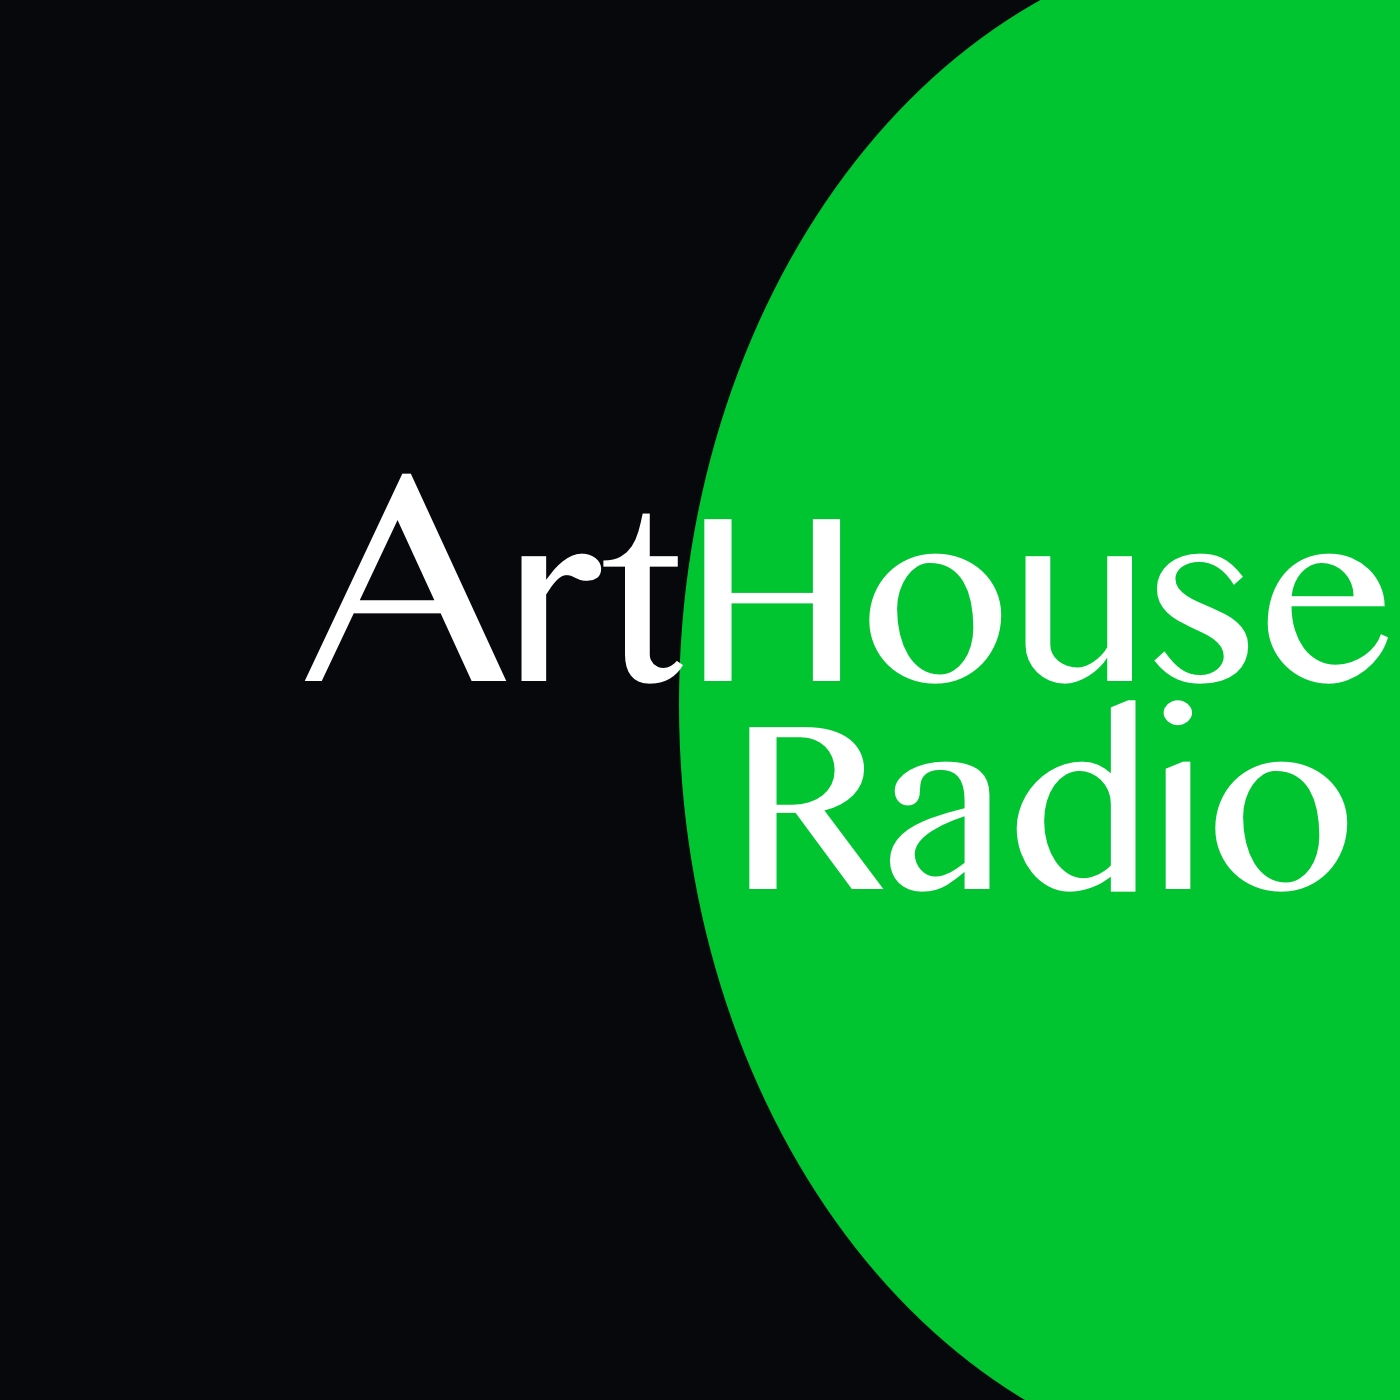 ArtHouse Radio